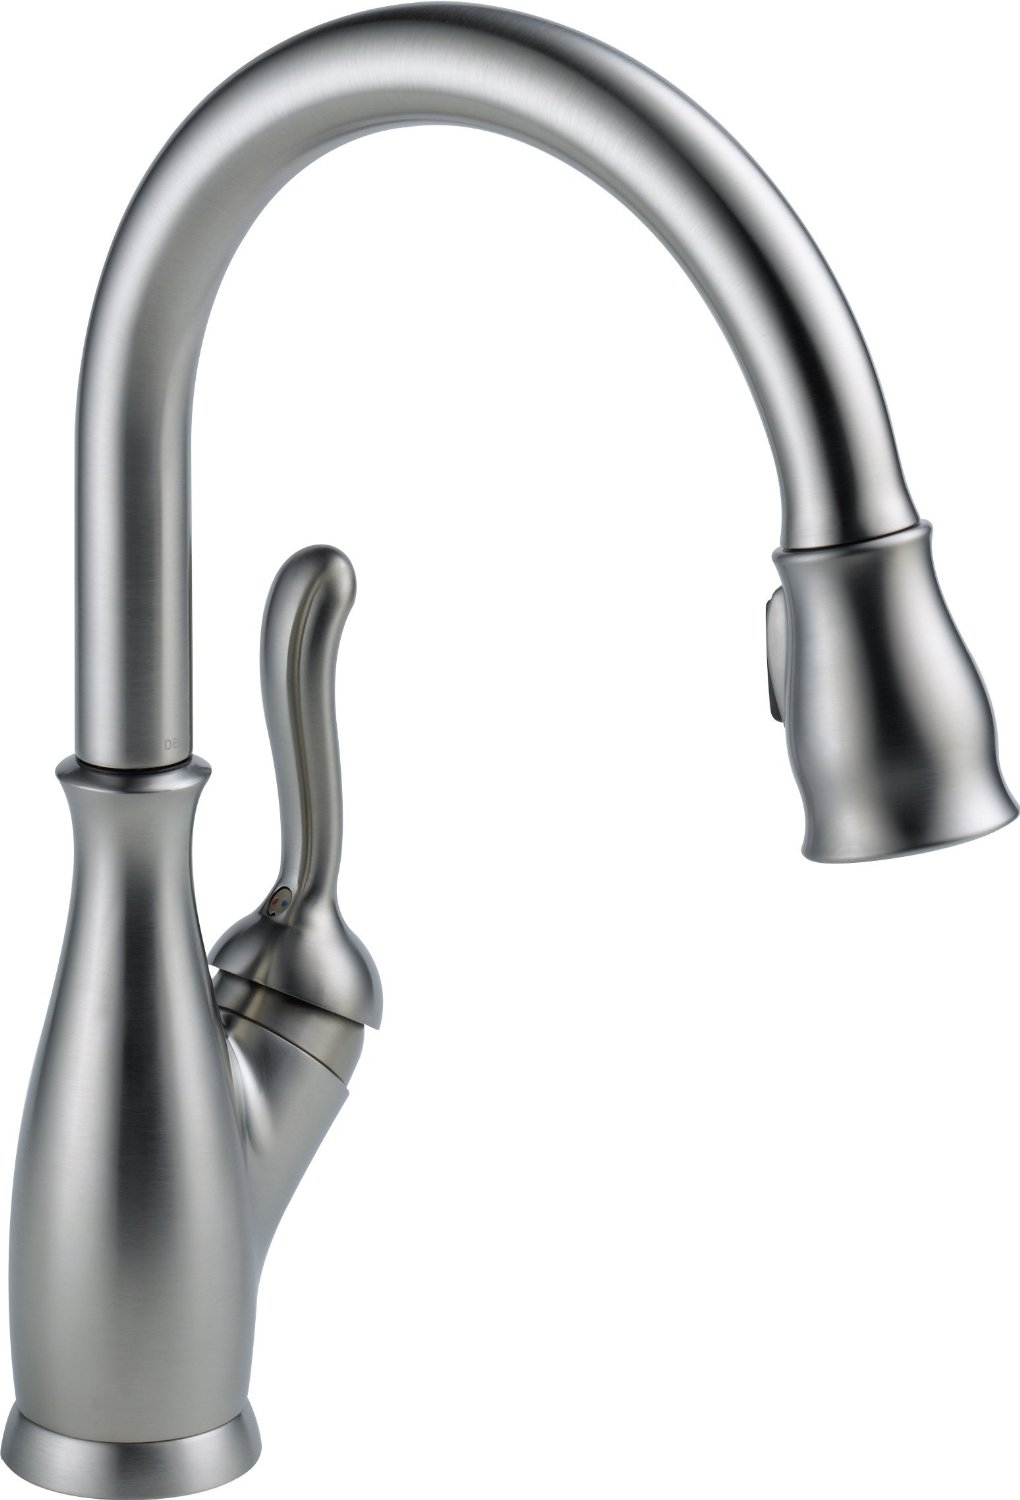 Ideas, delta faucets addison touch kitchen delta faucets addison touch kitchen delta kitchen faucets the complete guide top reviews 1020 x 1500  .